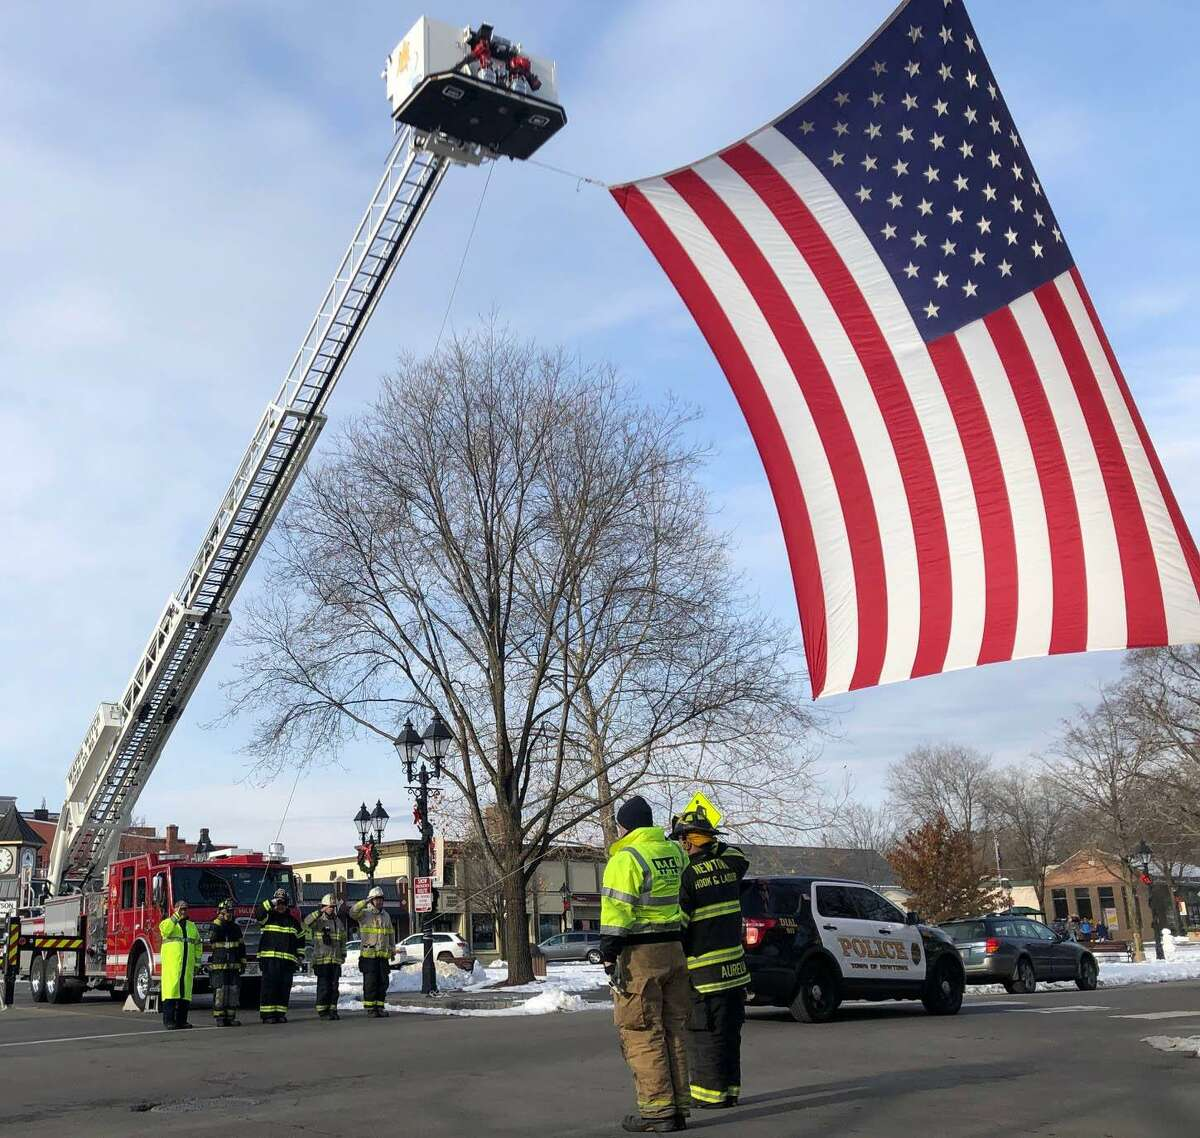 Spectrum/ A large American flag draped across the north side of Main Street in New Milford last Friday, Dec. 6, 2019, paid tribute to Ronald J. Adams of New Milford. Adams, 71, died Nov. 29 at his home. Firefighters from Water Witch Hose Co. #2 in New Milford and Newtown fire department hung the flag between New Milford's Tower 25 and Newtown's Truck 14 from the crossover near the bandstand to Church Street. A member of Iron Works Local #40, Adams had been of the construction of the World Trade Center. After 9/11, Adams stepped up and was part of the rescue/recovery efforts, which contributed to his disease. Above, Water Witch members, from left to right, on left, Bob Golembeski, Al Tani, David Golembeski, Lt. Sean Delaney and Chief Jim Ferlow, as vehicles in the procession make their way beneath the flag. New Milford Tower 25 and Newtown Truck 14